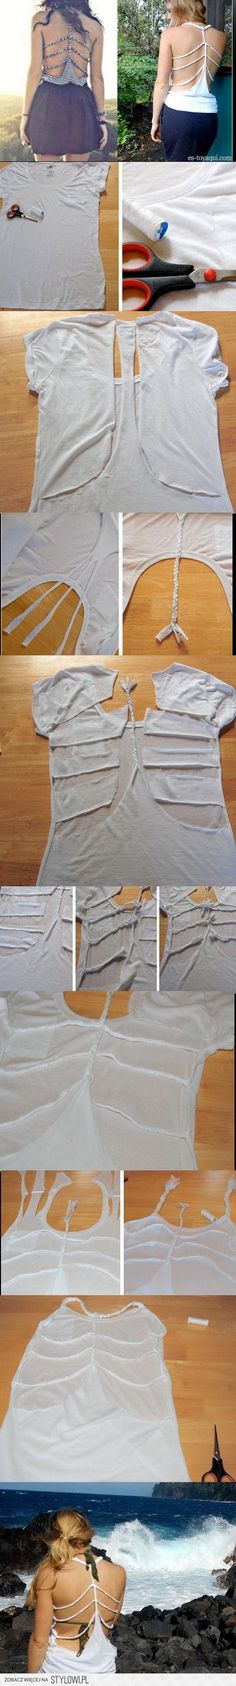 DIY shirt @ Do It Yourself Remodeling Ideas